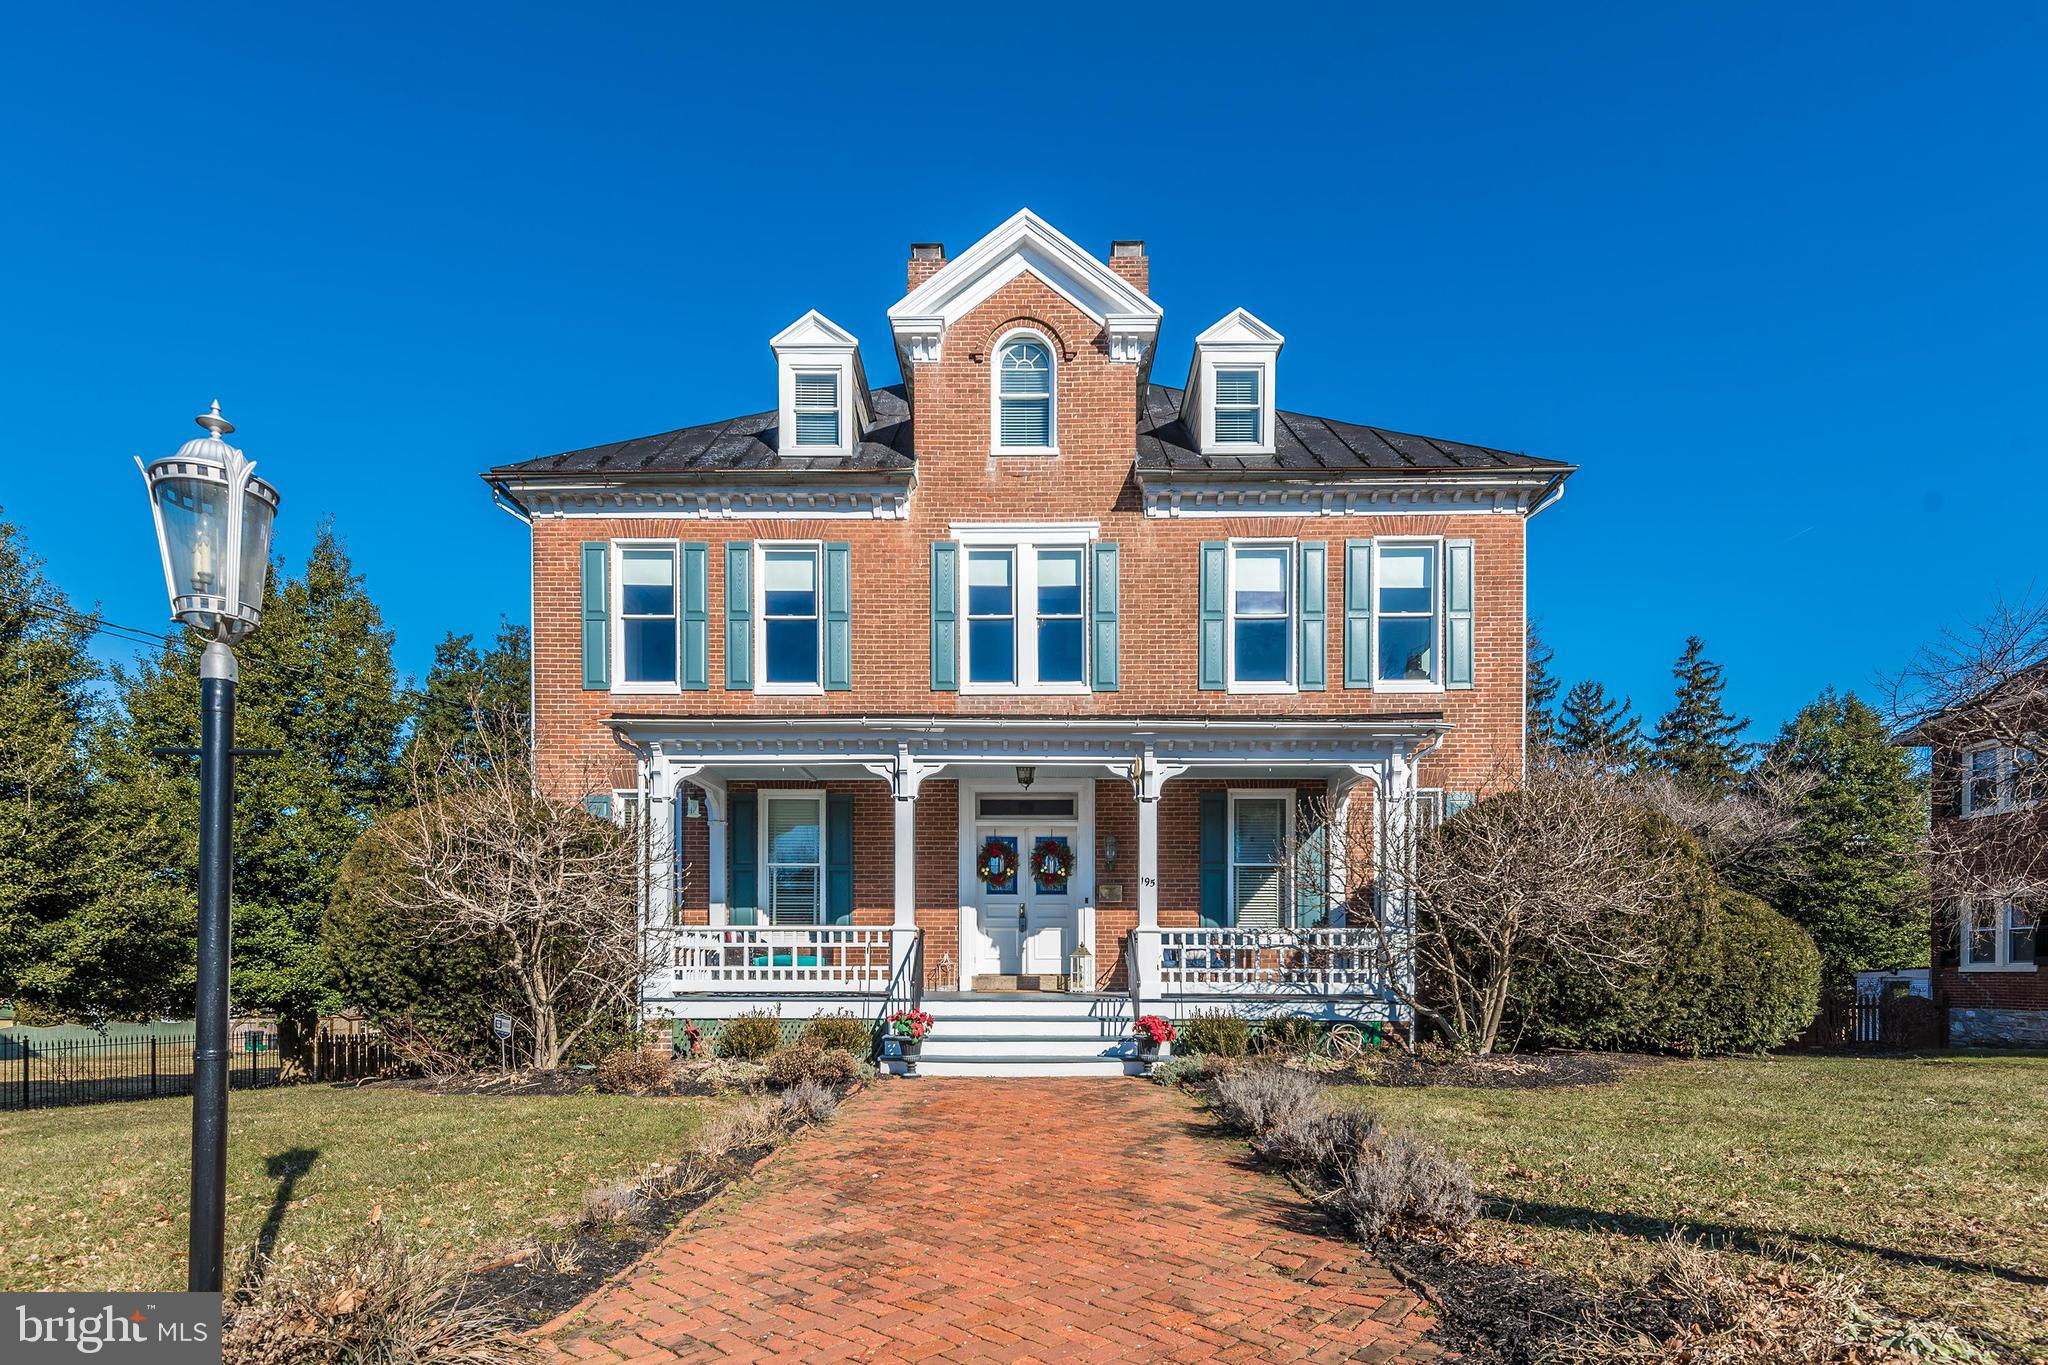 Enjoy all the luxuries of a charming historic small-town setting. This extraordinary & elegant Victo